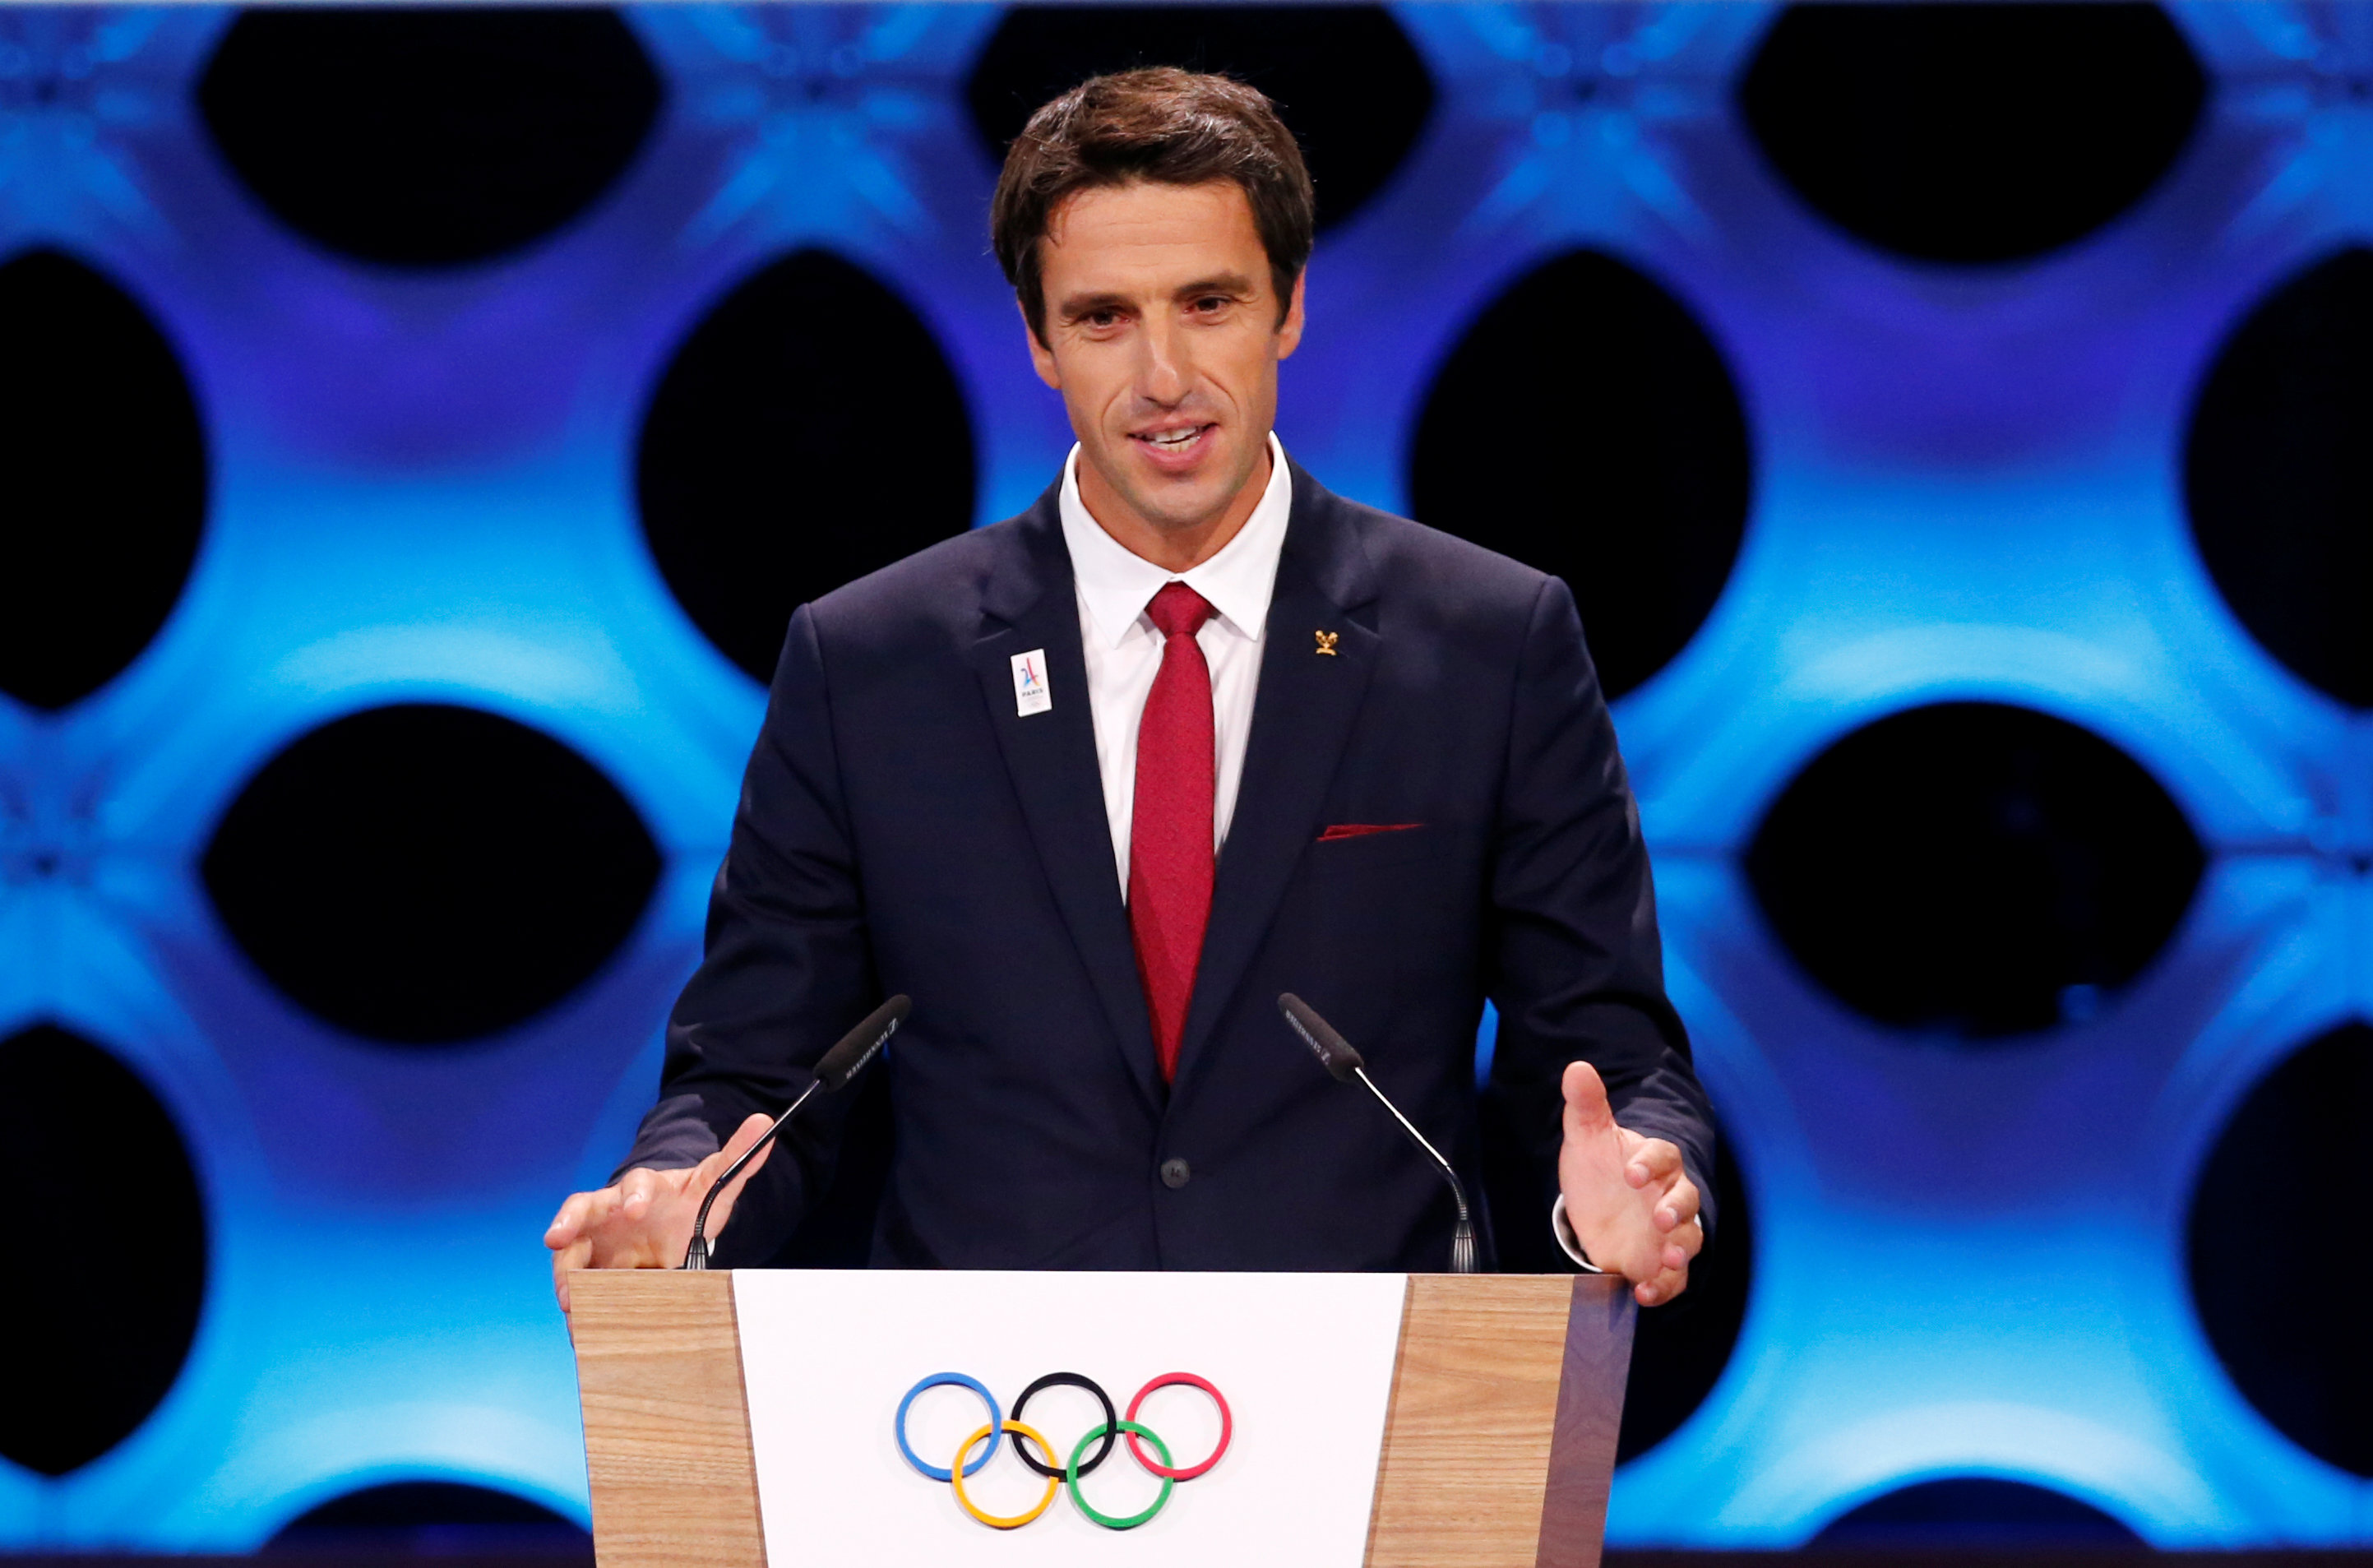 International Olympic Committee (IOC) member and Co-Chairman Paris 2024 Tony Estanguet gives a speech at the presentation of Paris 2024 at the 131st IOC session in Lima, Peru on Sept. 13, 2017. (REUTERS/Mariana Bazo)